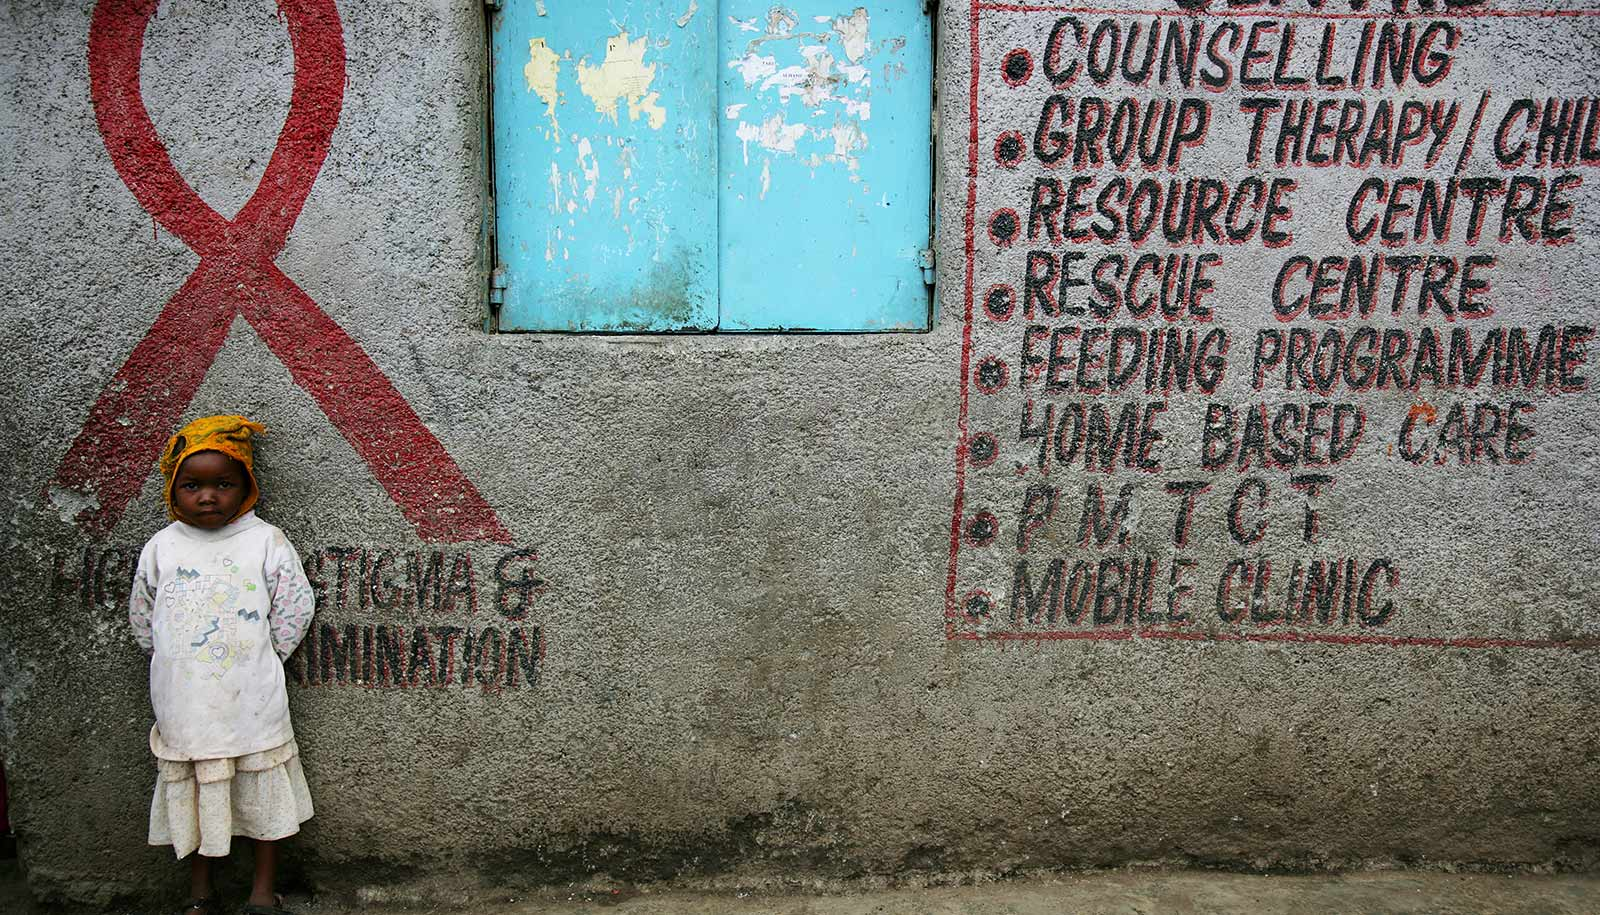 Lay counselors help kids in East Africa cope with trauma